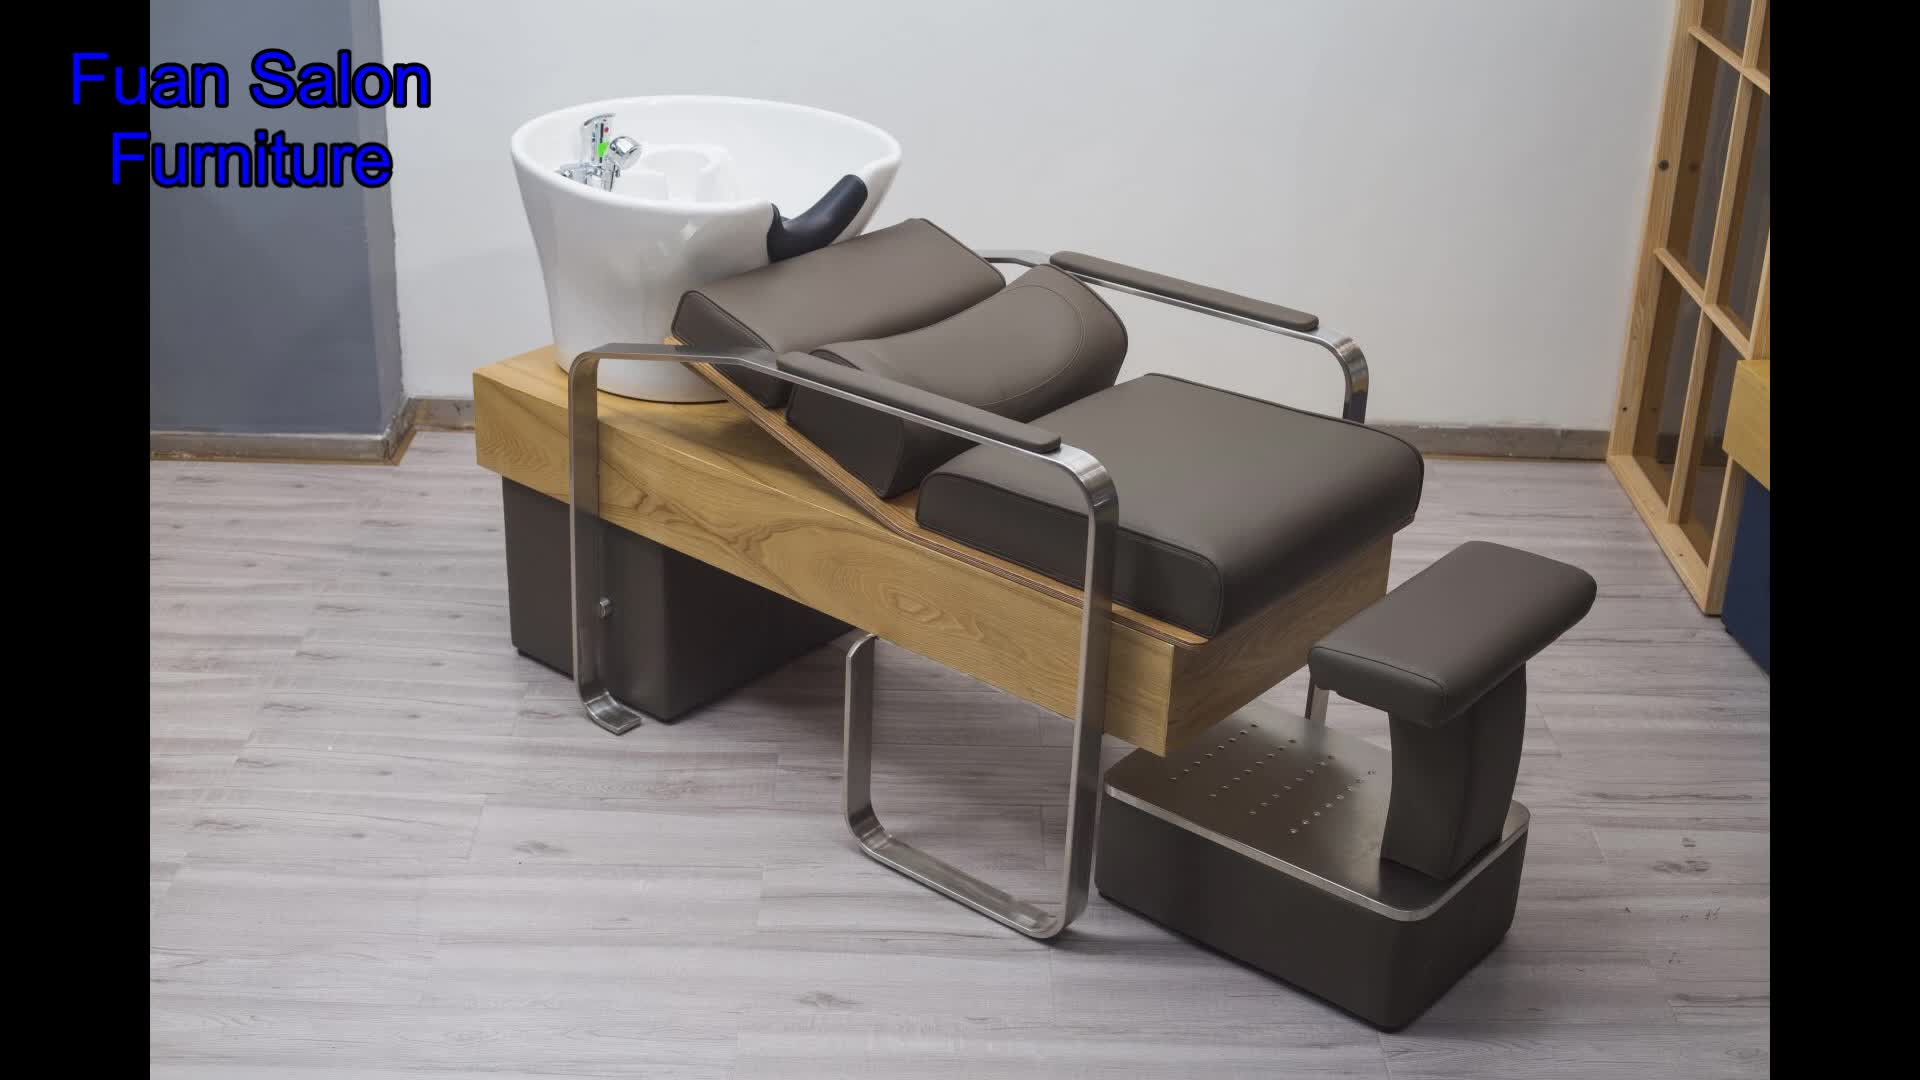 Salon furniture hairdressing supplies modern cheap shampoo bowl backwash unit basins washing used salon hair shampoo